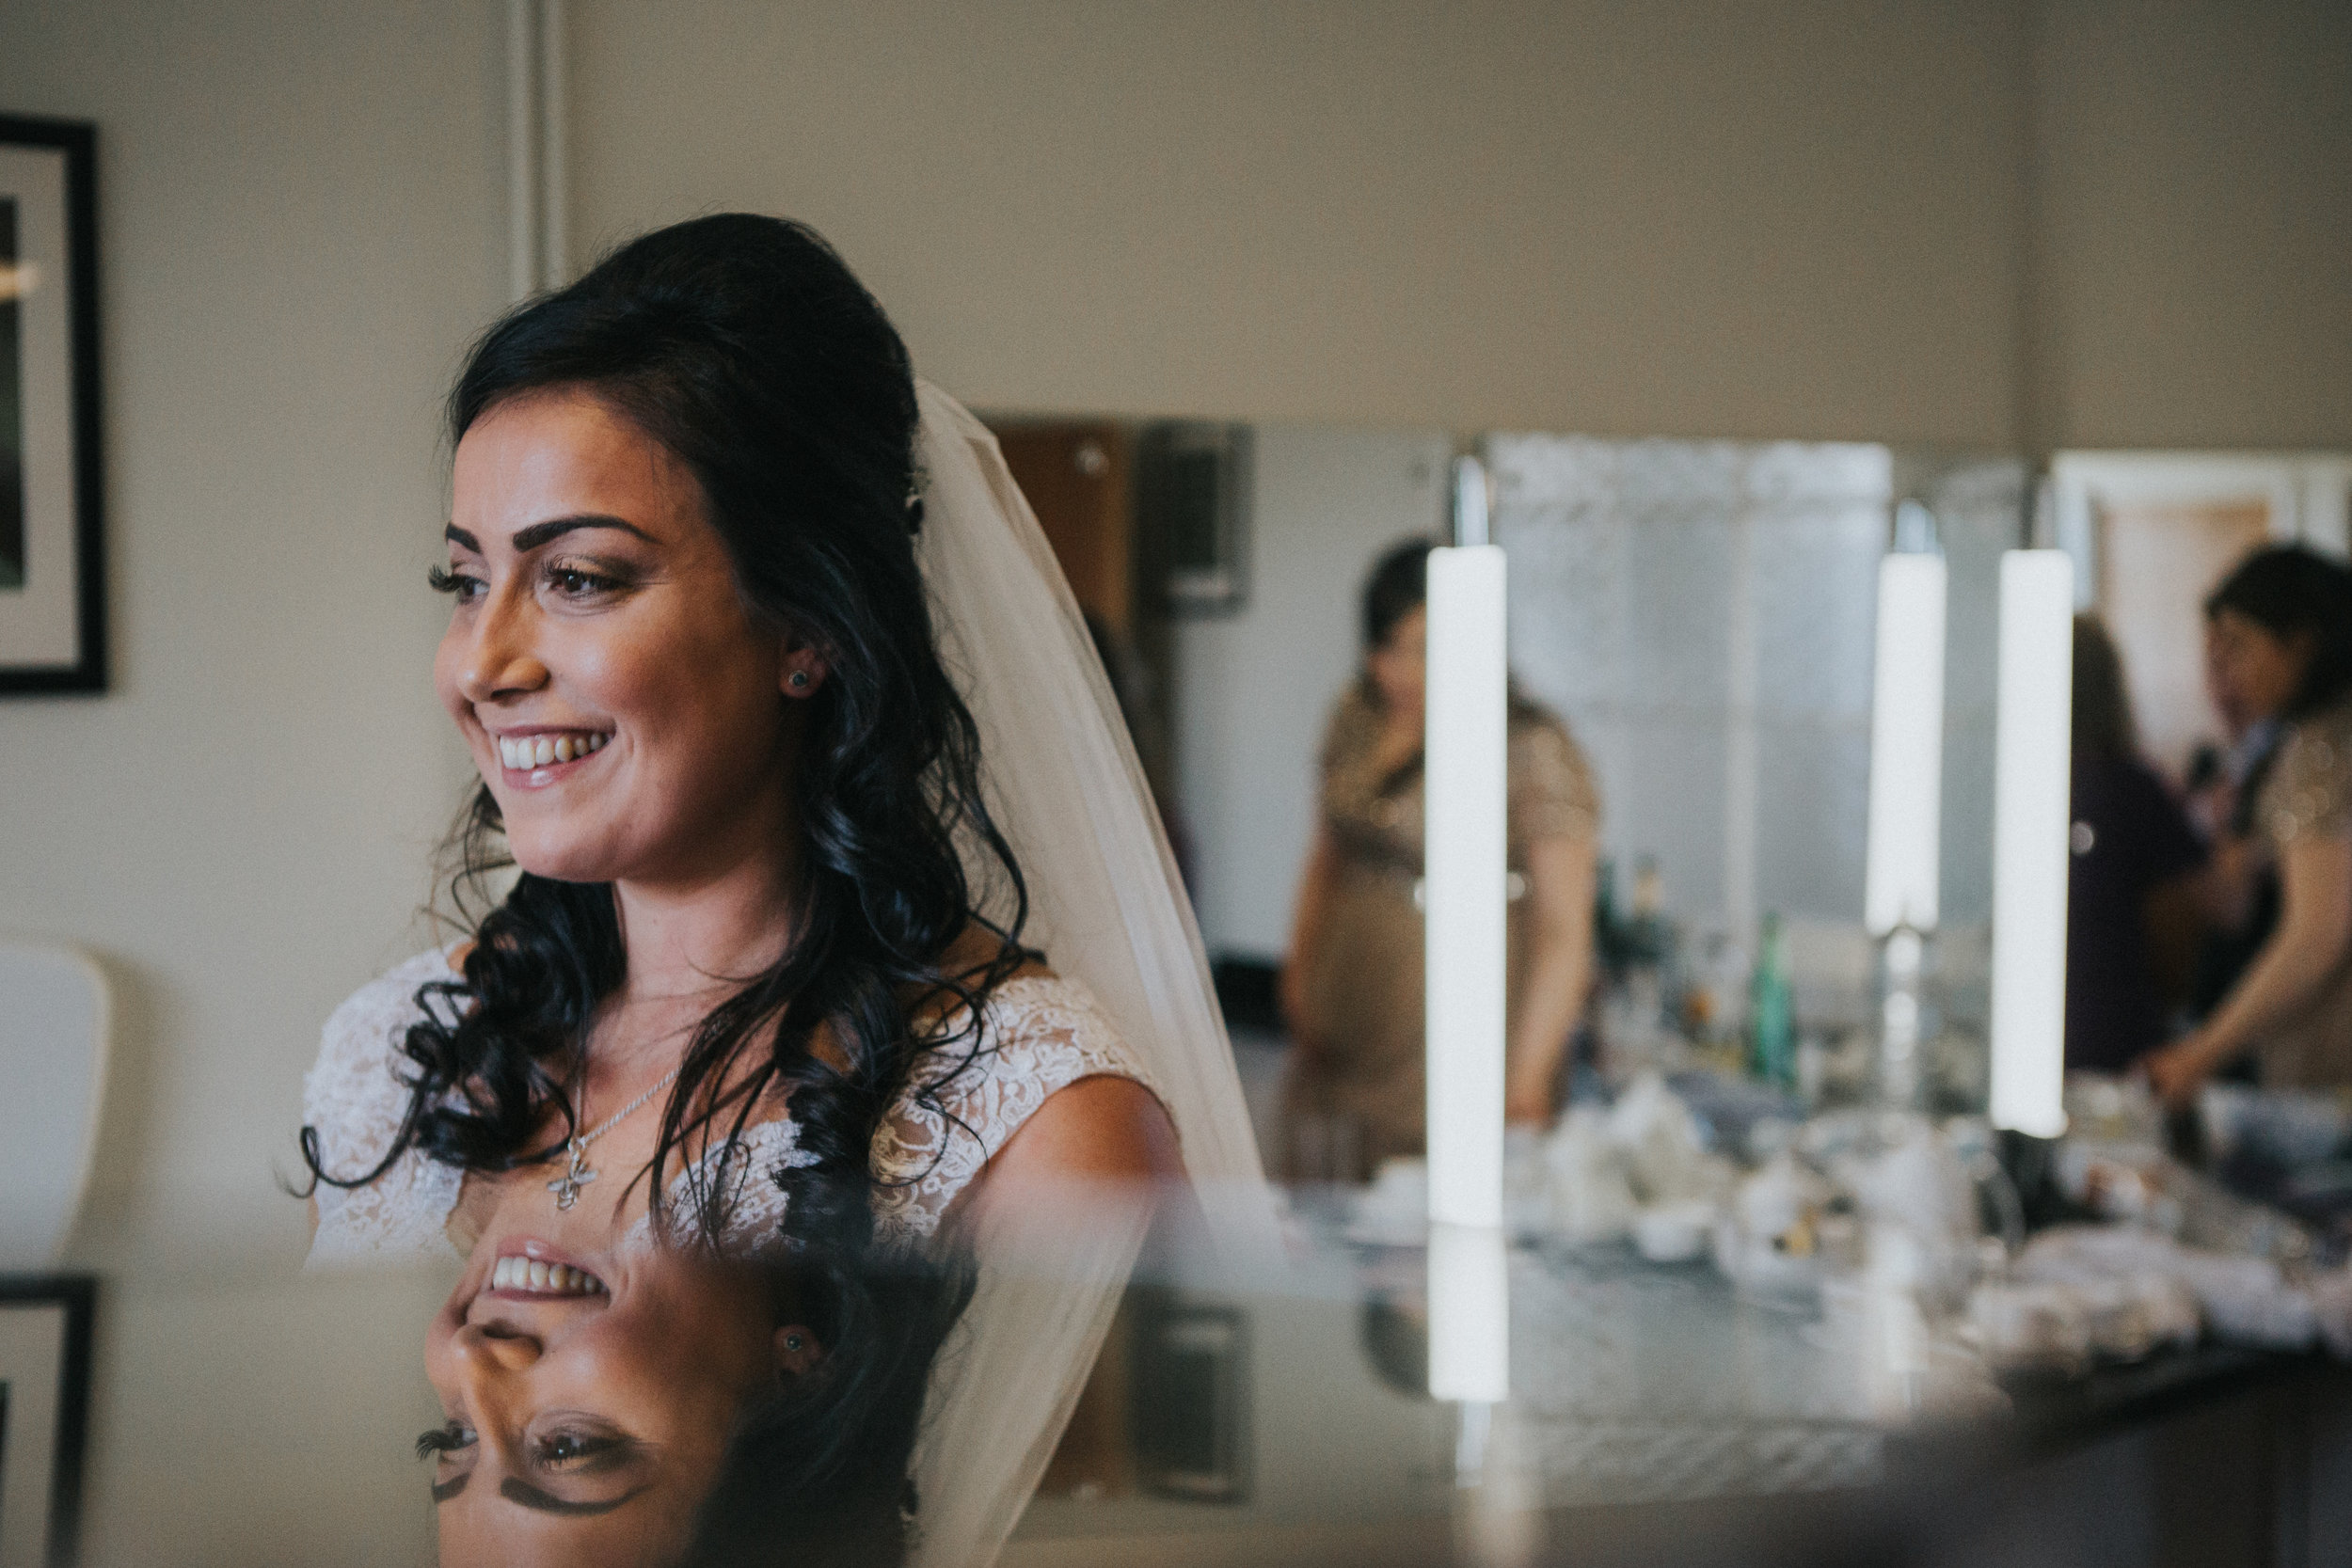 london-bedfordshire-uk-wedding-photography-woburn-sculpture-gallery-bridal-prep-20